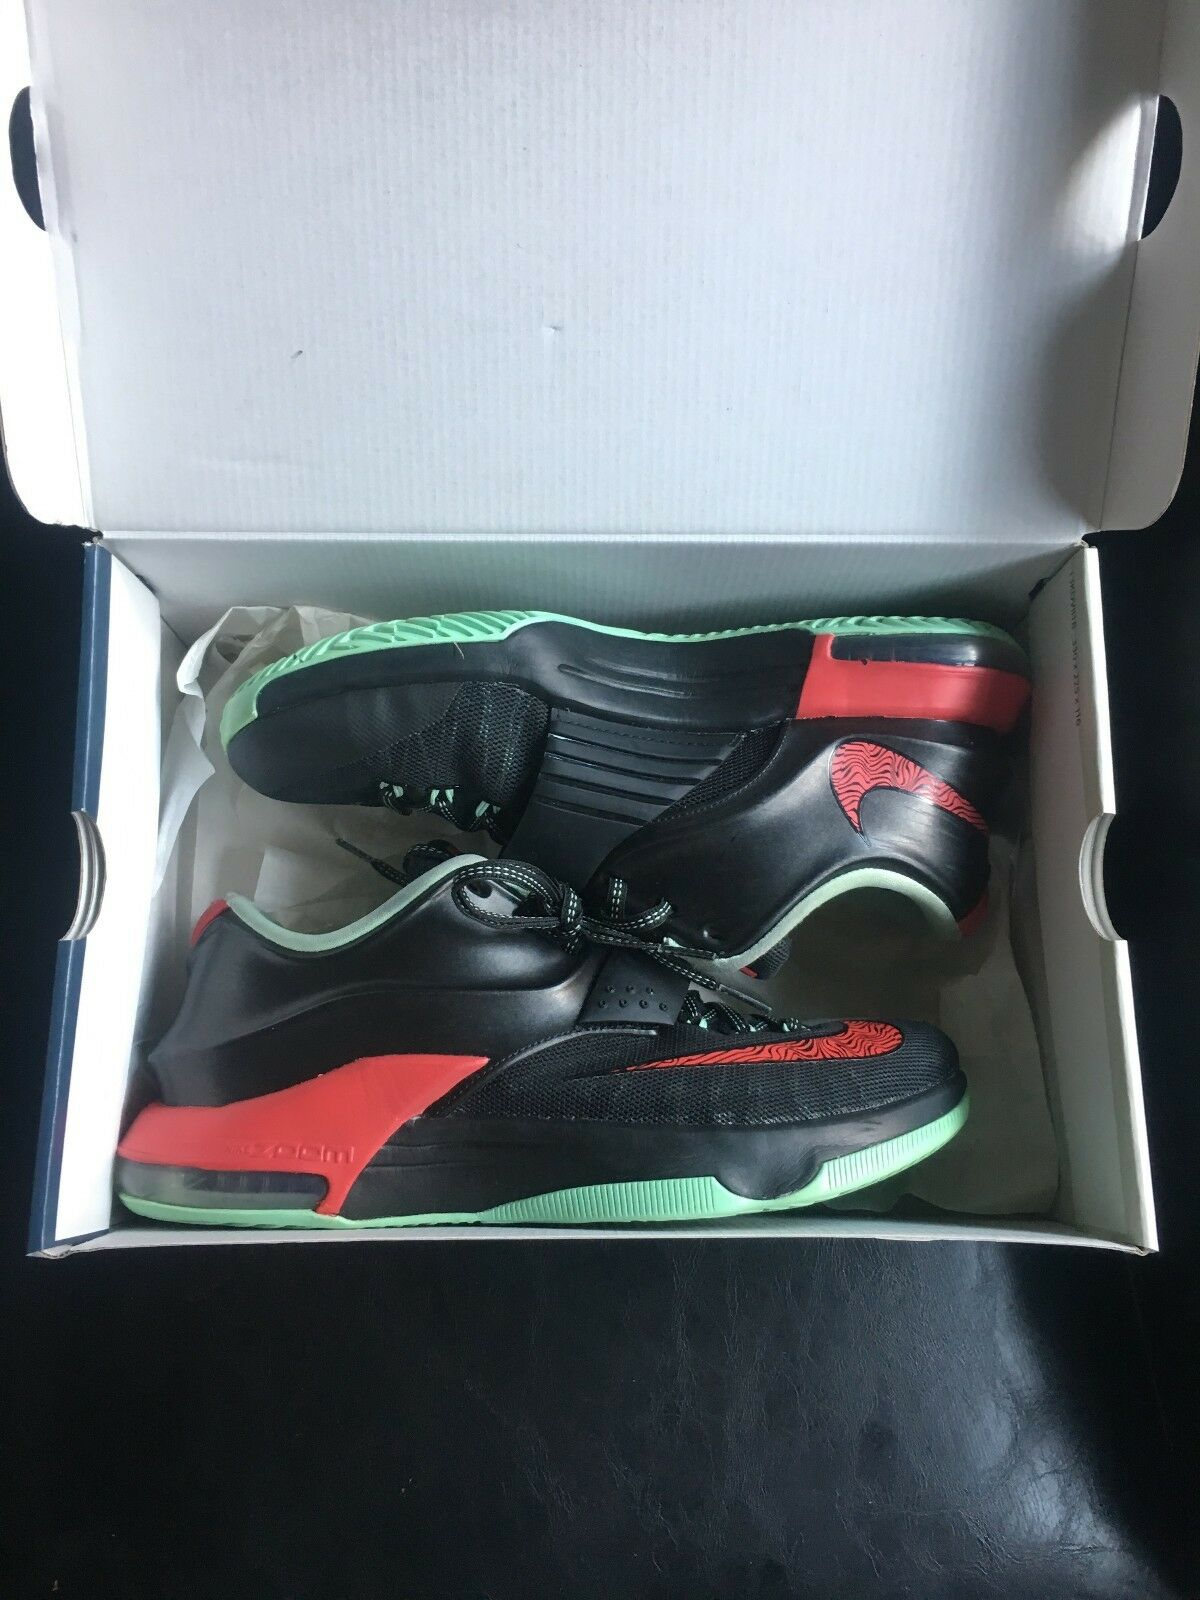 Nike KD 7 Bad Apples   Yeezy color way 653996-063 Kevin Durant VII Size 9